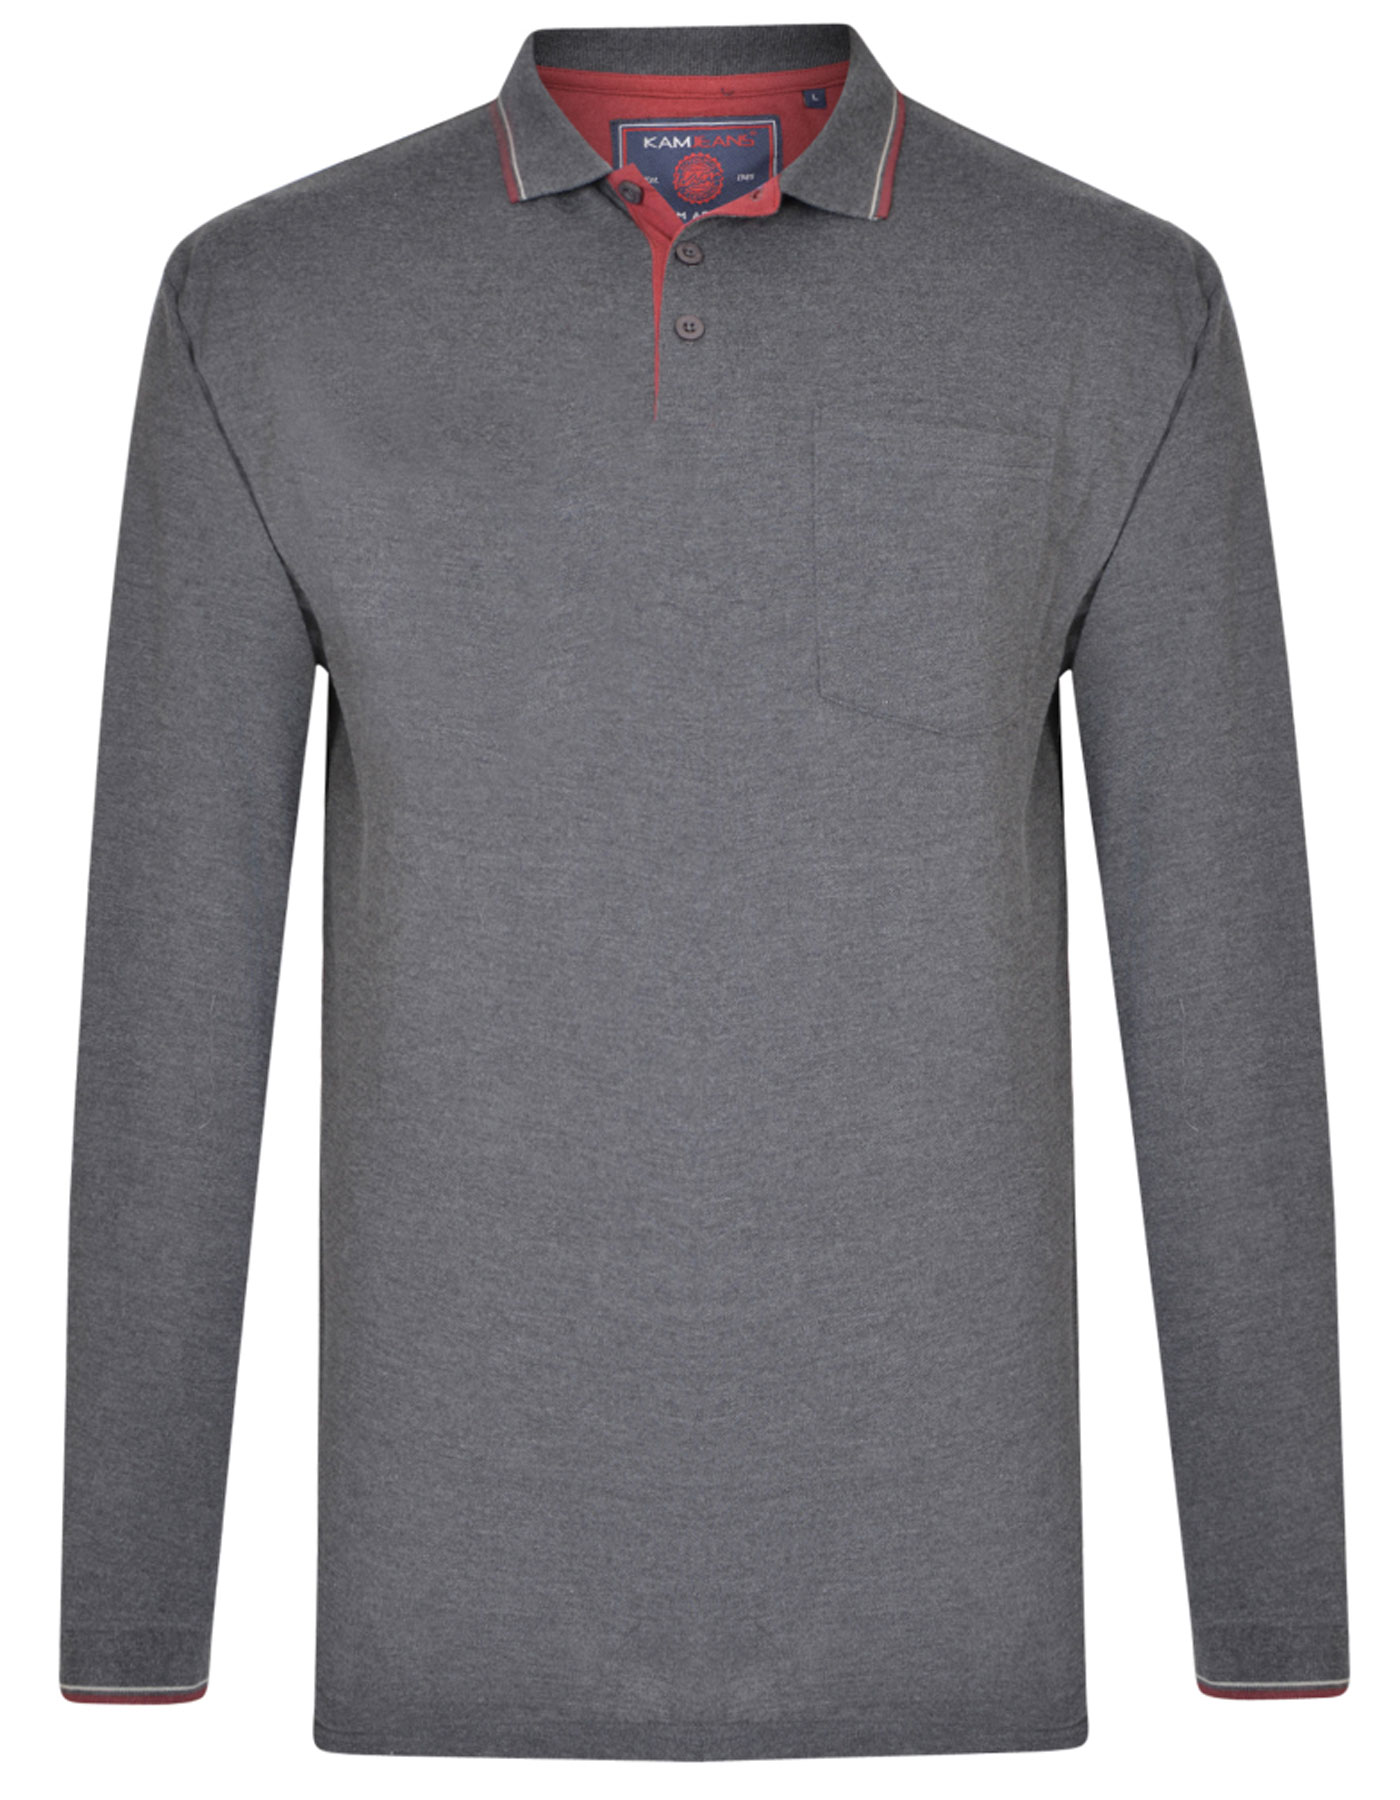 polo manches longues grande taille homme